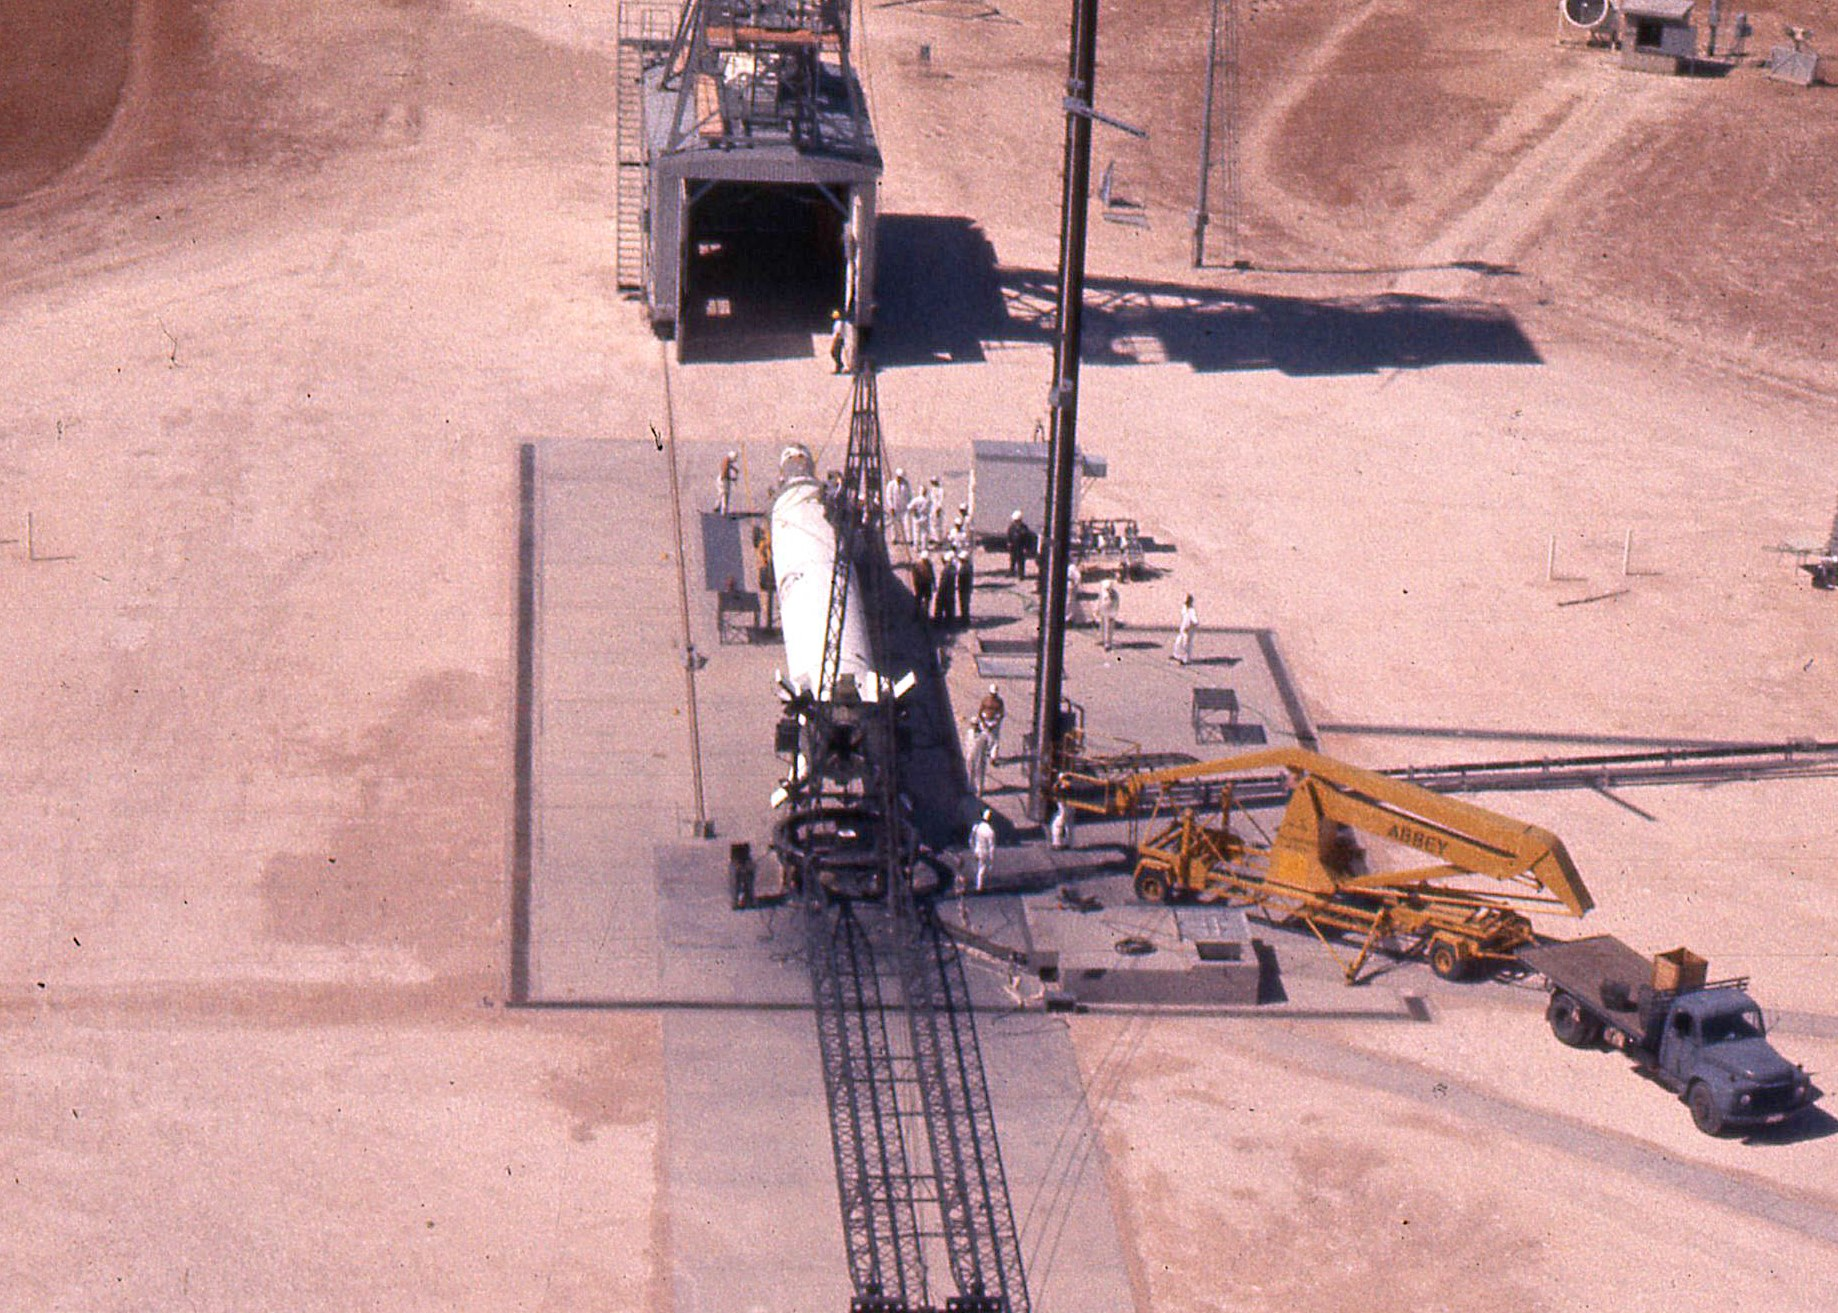 The Redstone rocket prior to its being lifted to the vertical position for launch at Woomera. The rocket was painted white for optical tracking purposes and the satellite attached while the Redstone rocket was still in the horizontal position. Photo courtesy of Prof John Carver.